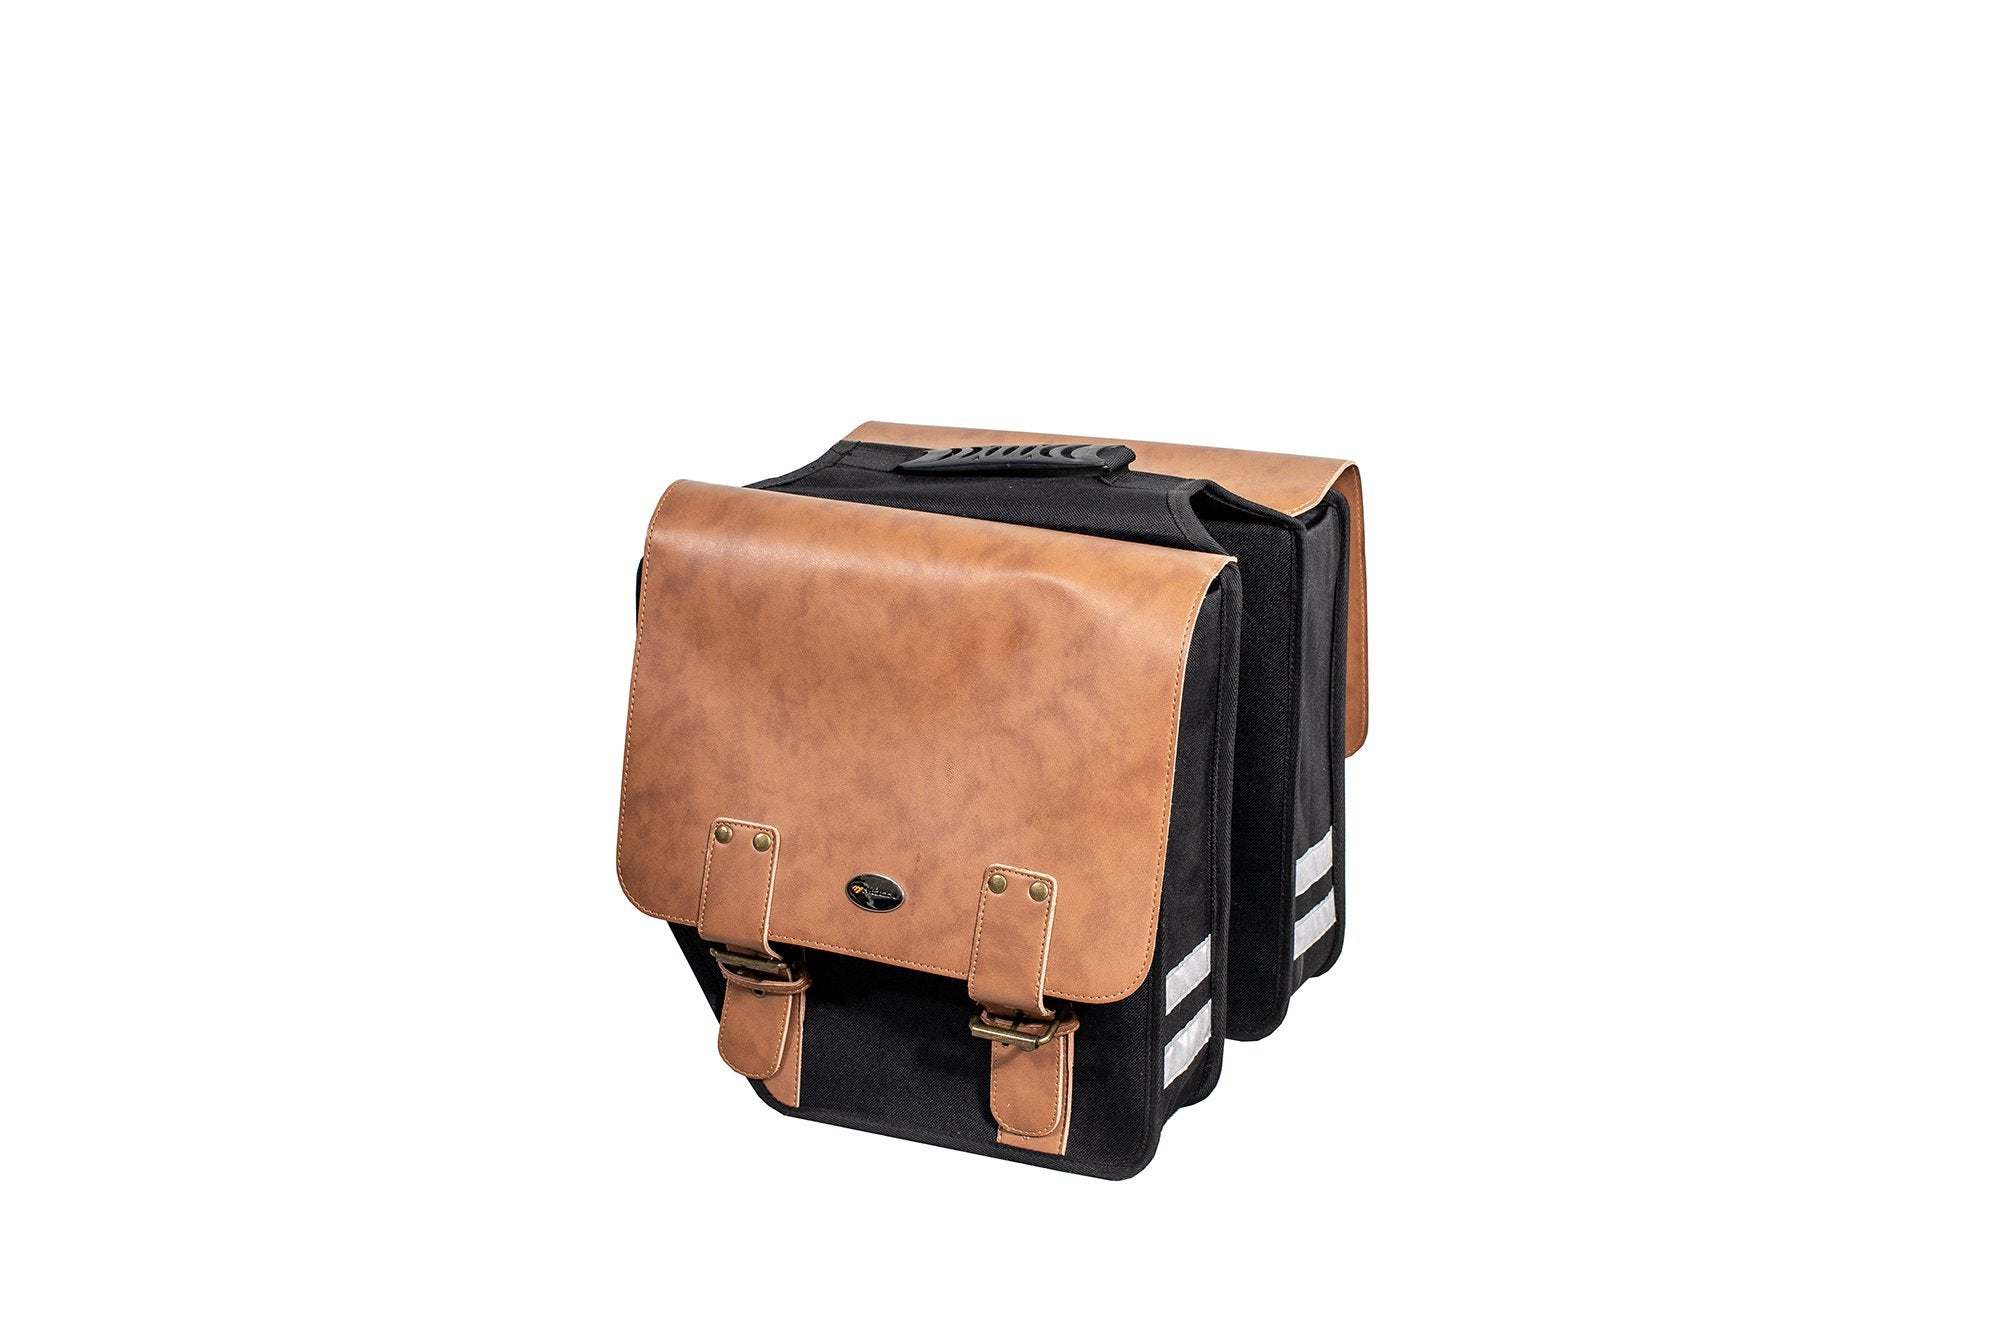 Rear Pannier for Runabout - In stock